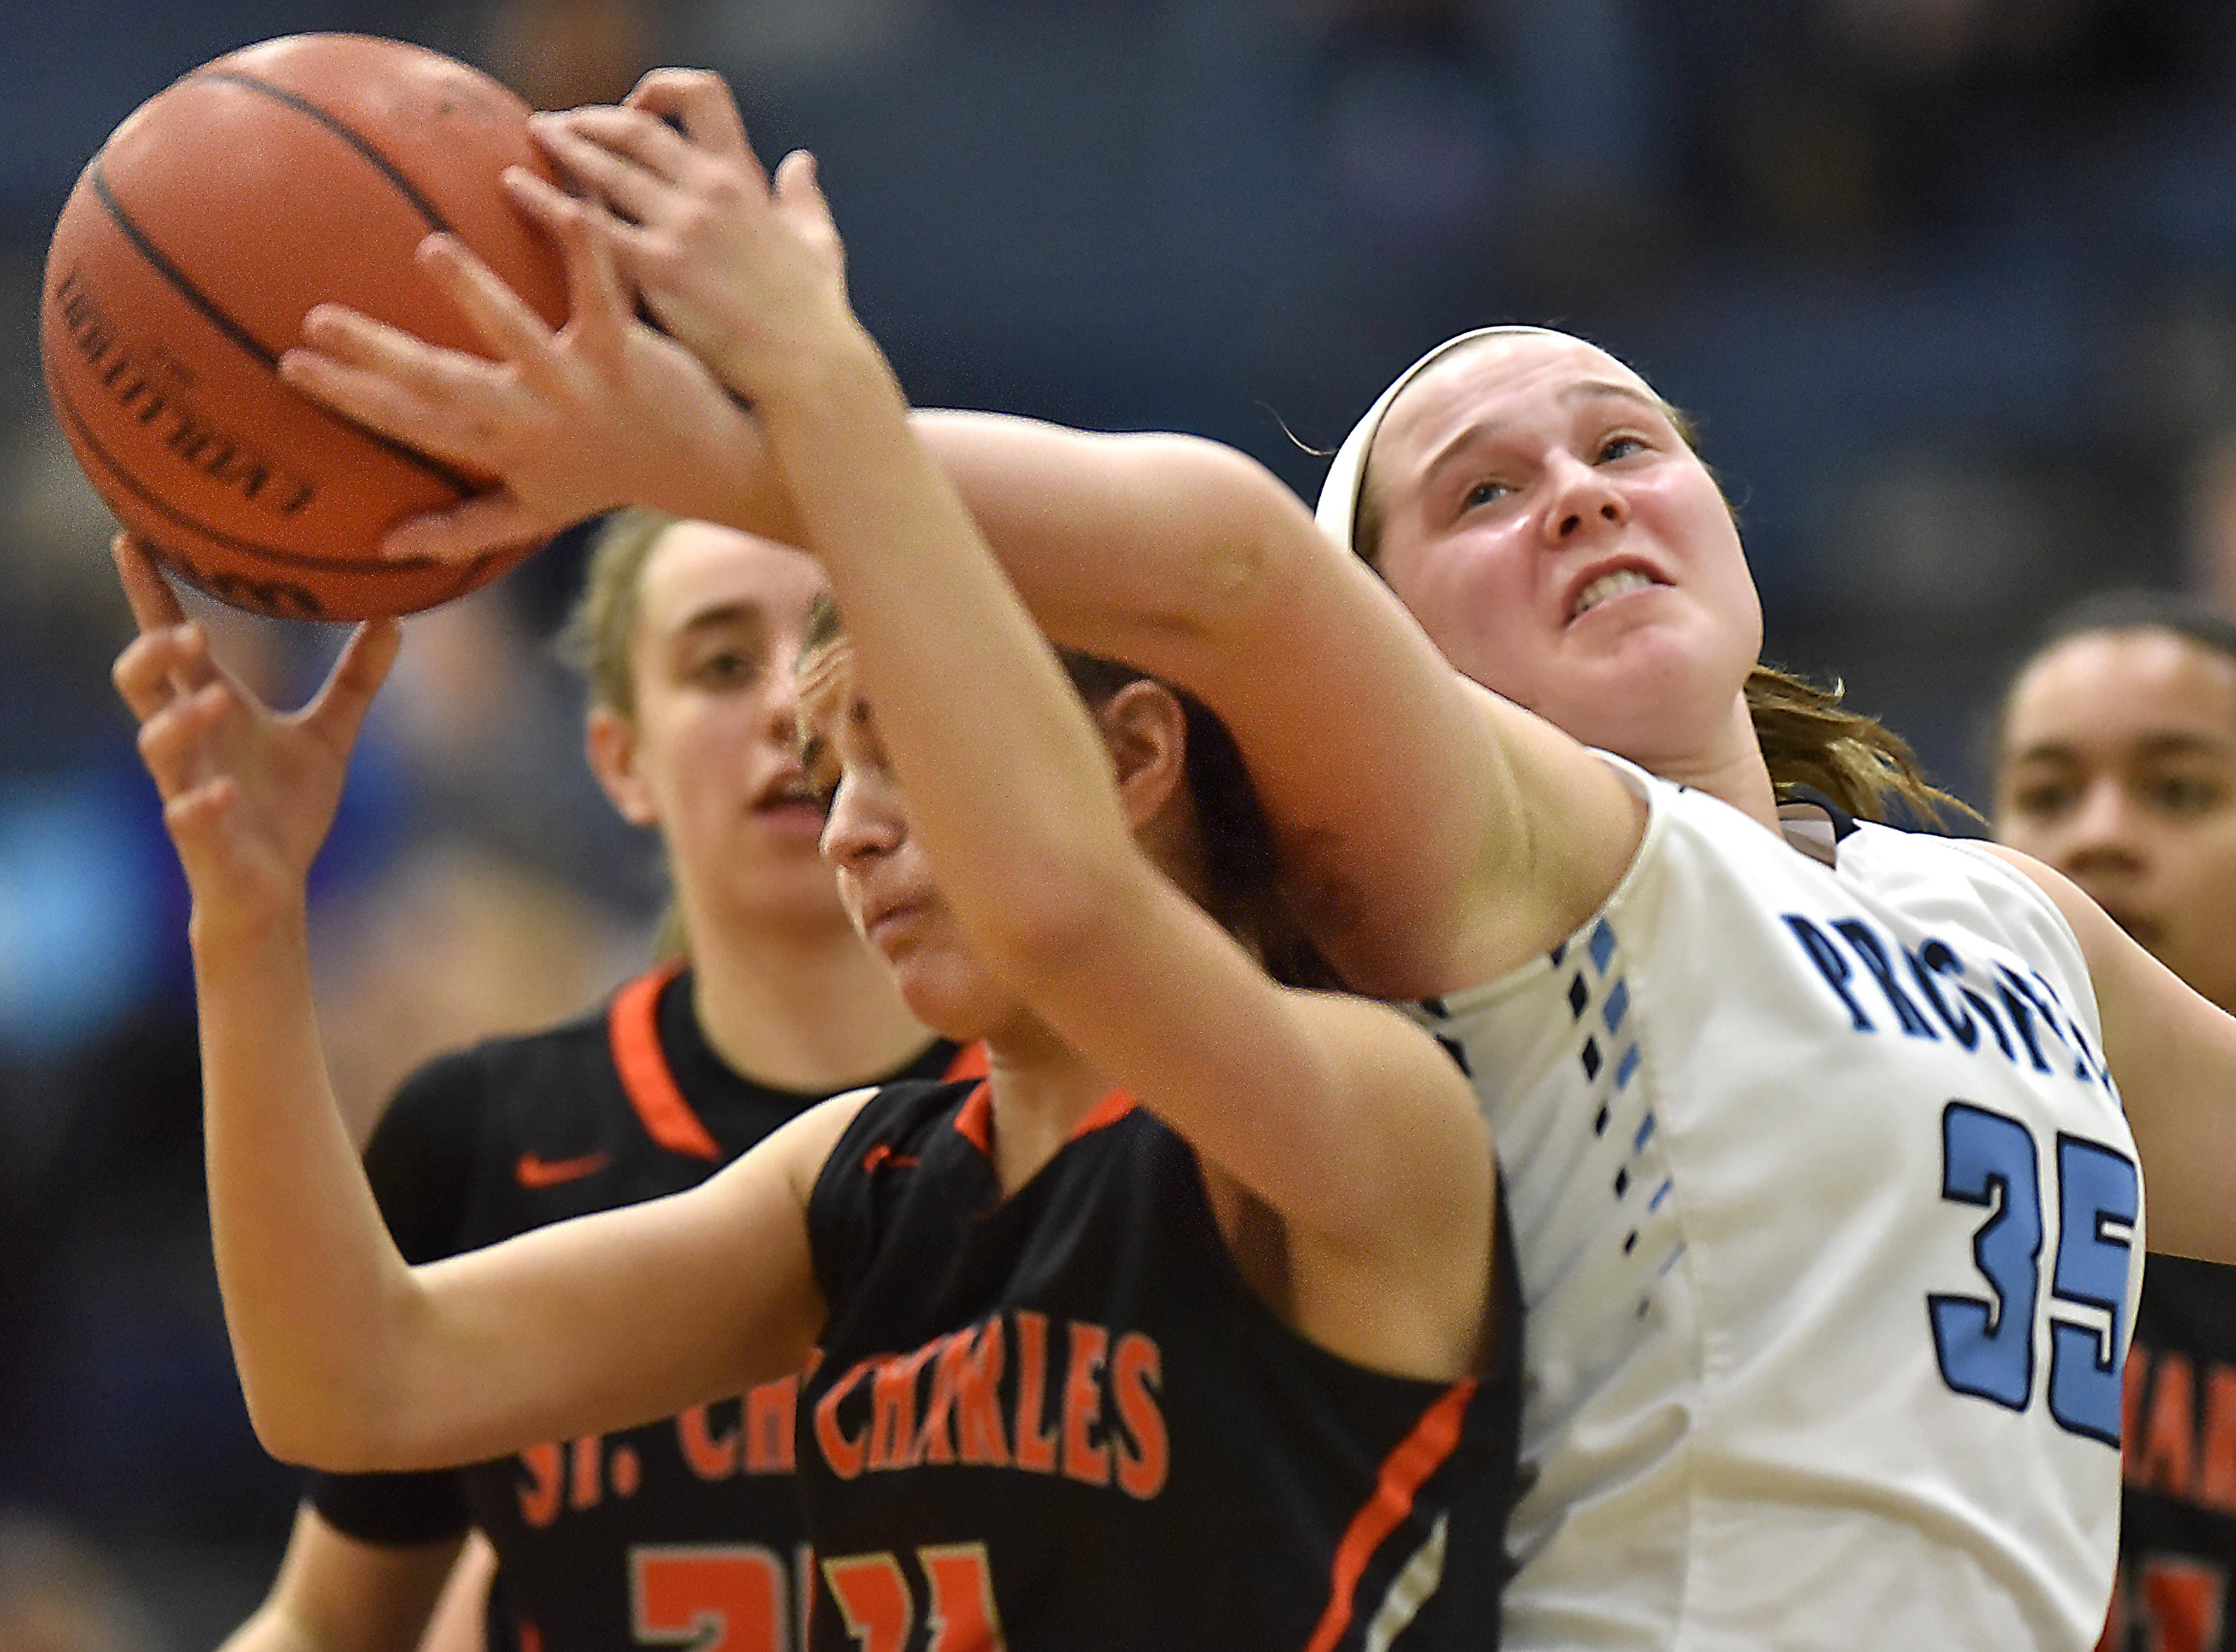 Prospect's Abbey Danciu extends her arm to keep St. Charles East's Victoria Kortan from getting a rebound Wednesday in a girls basketball game in Mount Prospect.